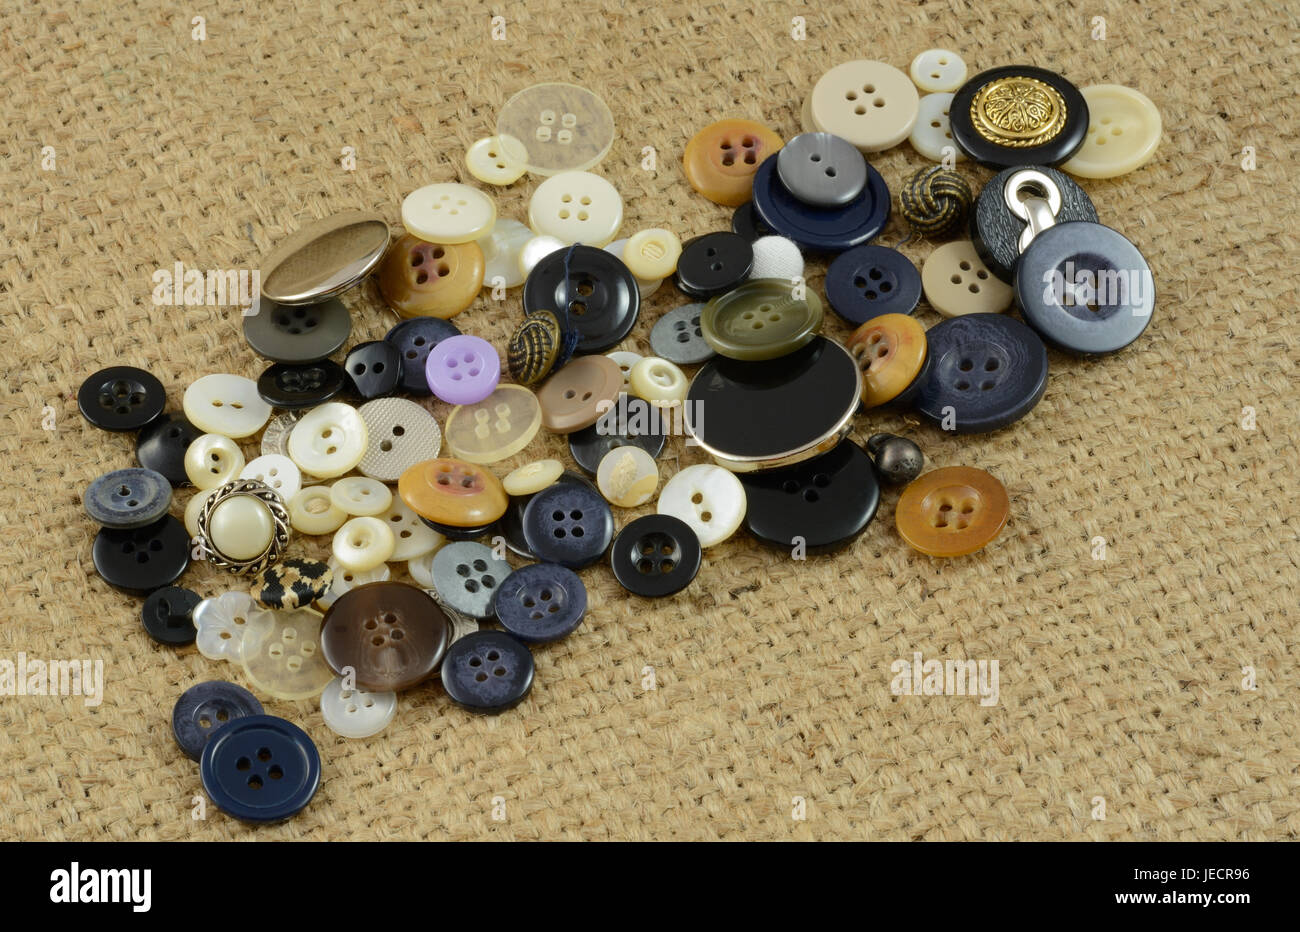 Collection of buttons for crafting or sewing projects on burlap Stock Photo